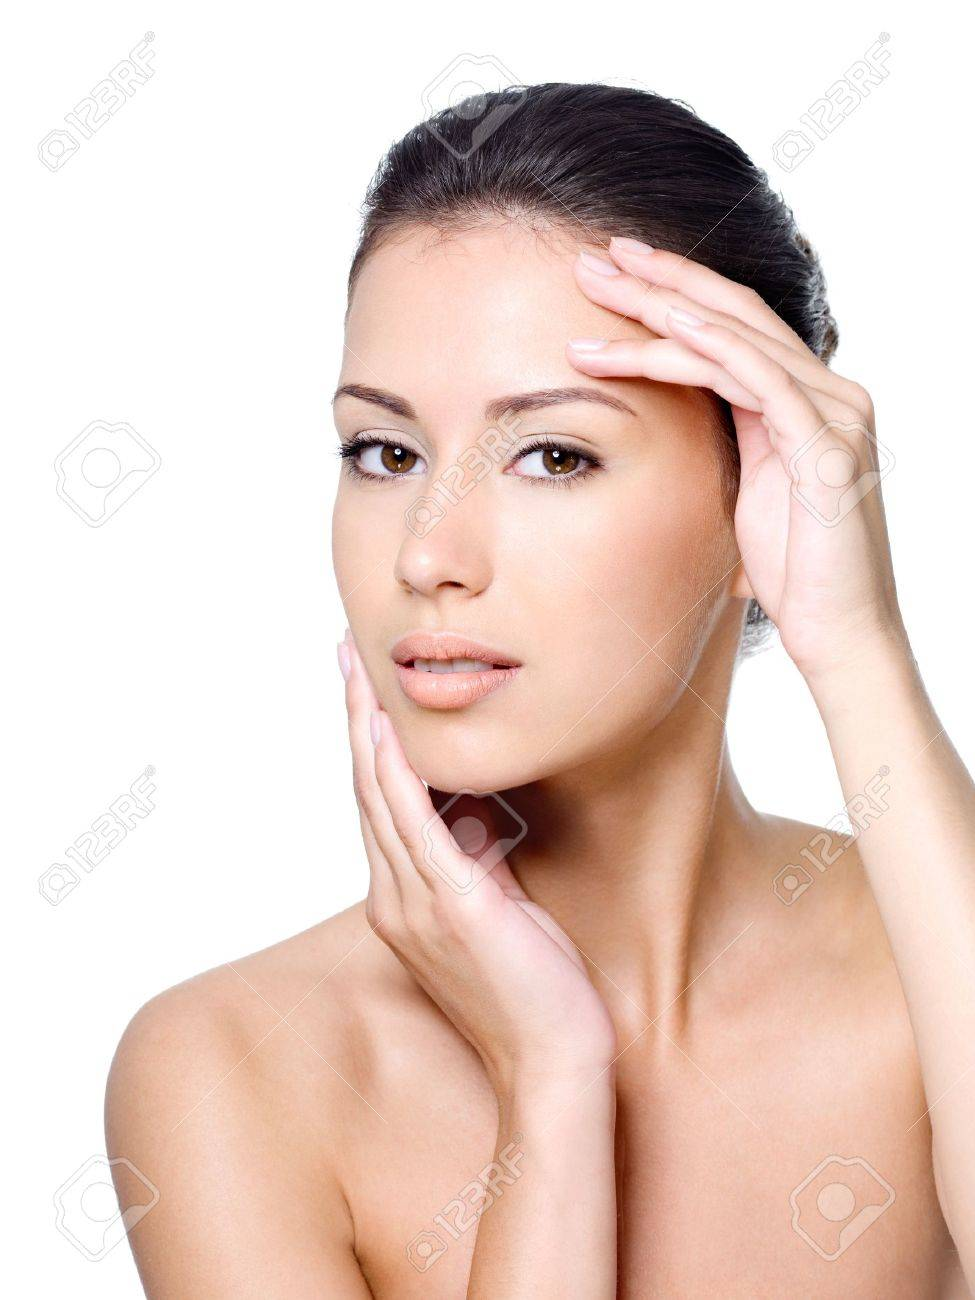 Beauty portrait of young woman with healthy skin on a face - close-up Stock Photo - 7416224